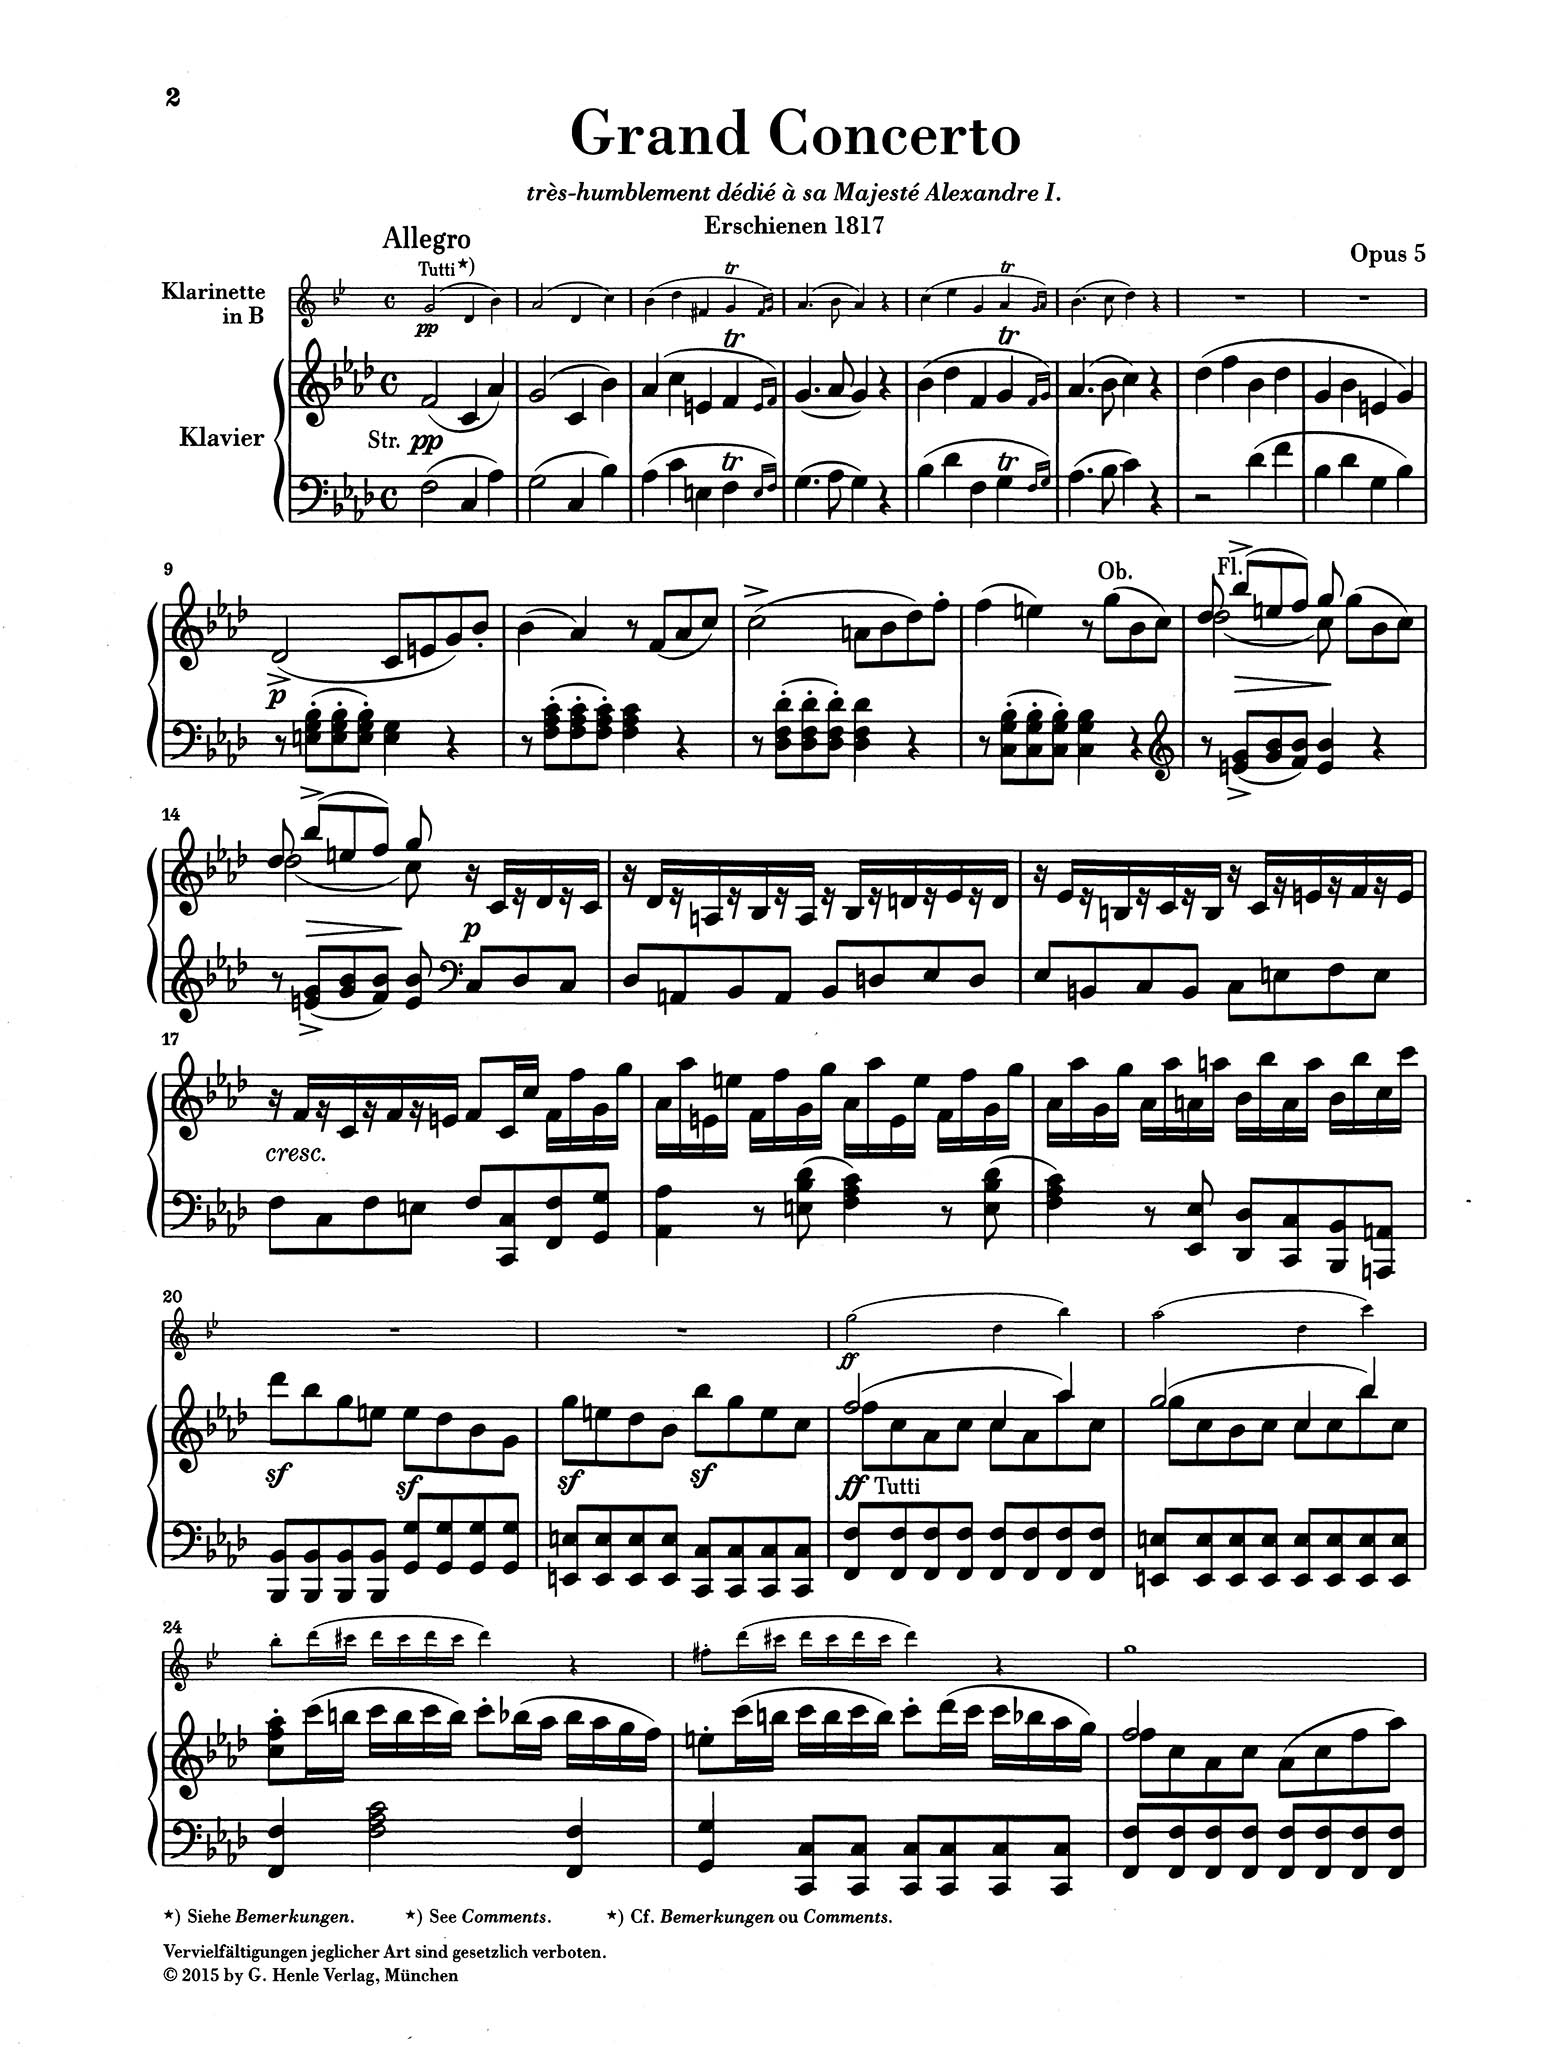 Clarinet Concerto No. 2 in F Minor 'Grand Concerto', Op. 5 - Movement 1